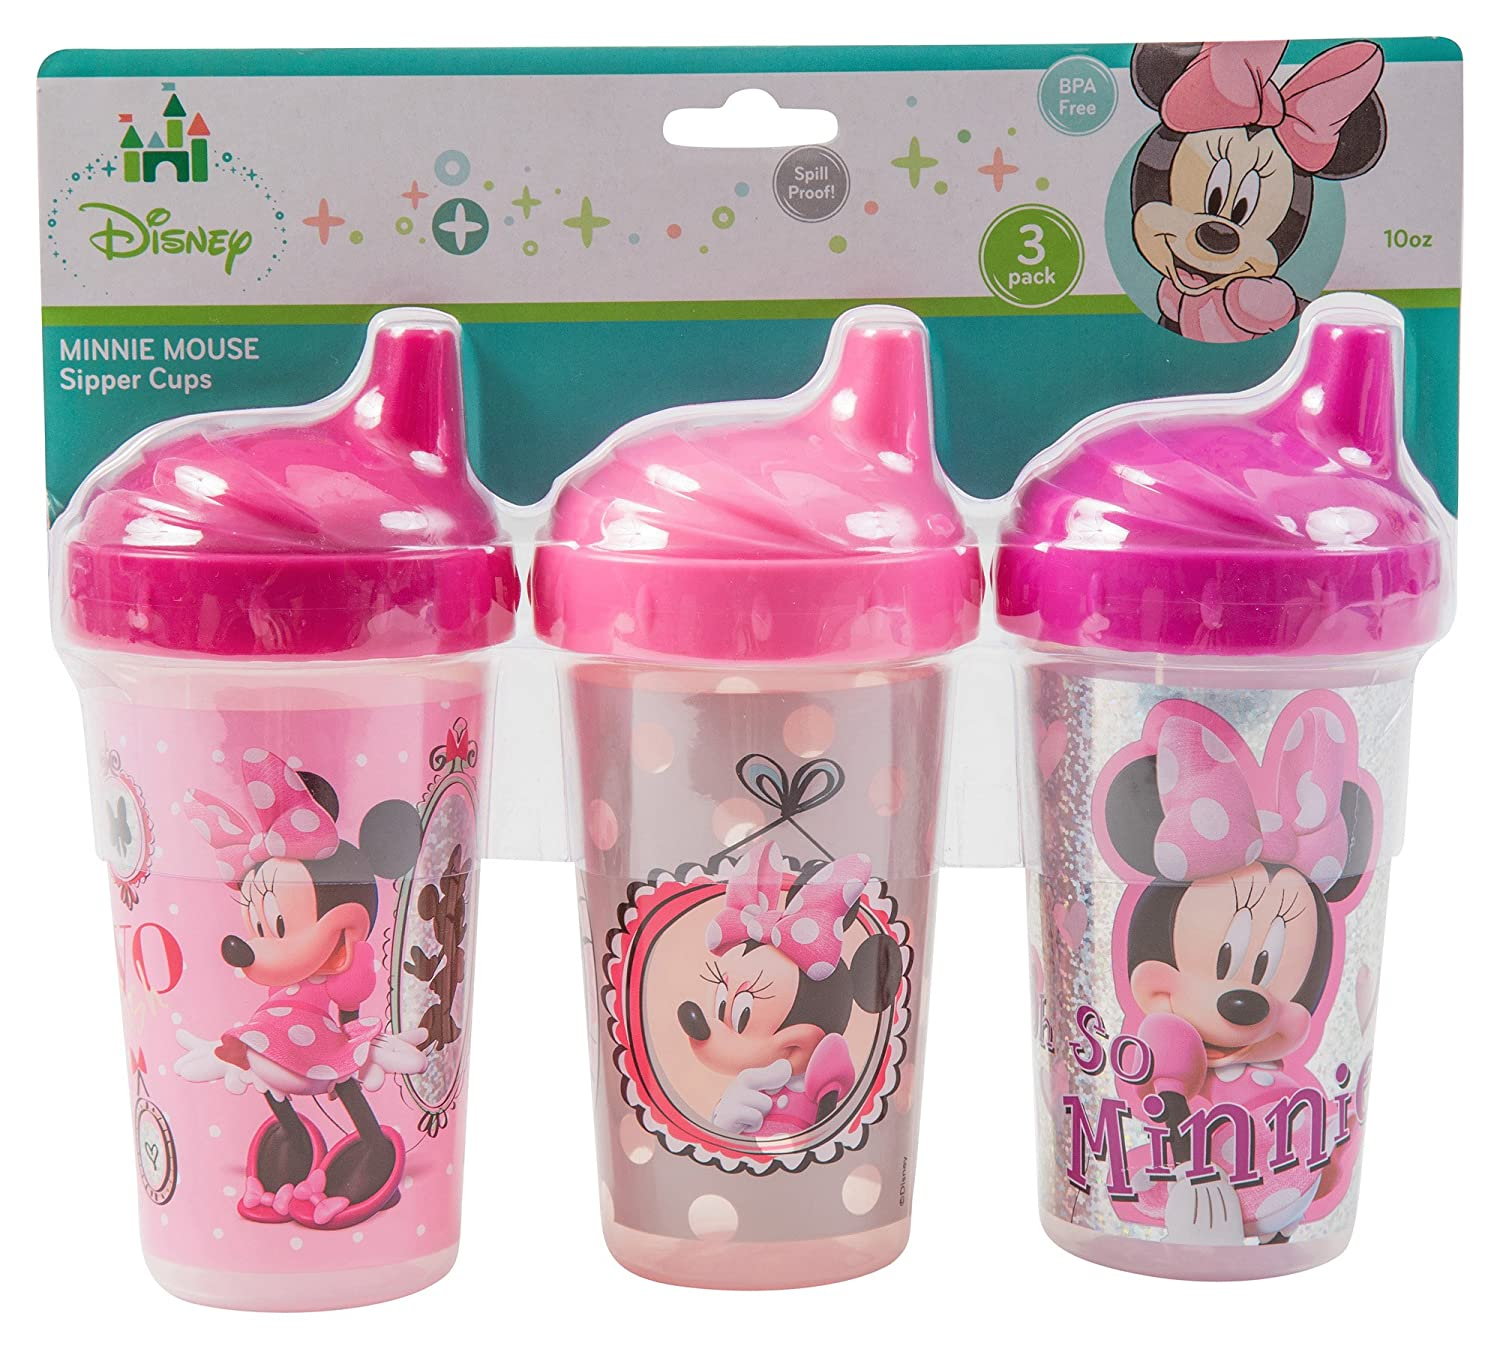 Disney Minnie Mouse Sippy Cups, Pink, 3 Count FD50458-000-PNK